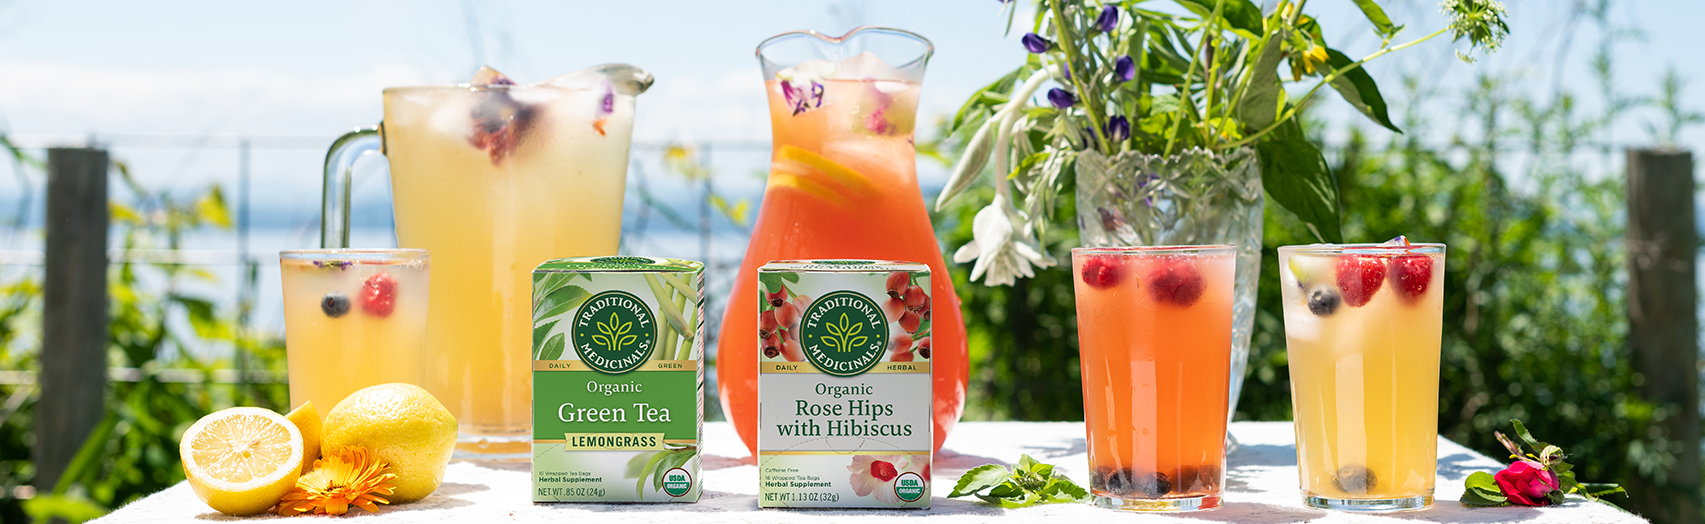 Herbal lemonade in pitchers and glasses with Green Tea Lemongrass and Rose Hips with Hibiscus cartons on table